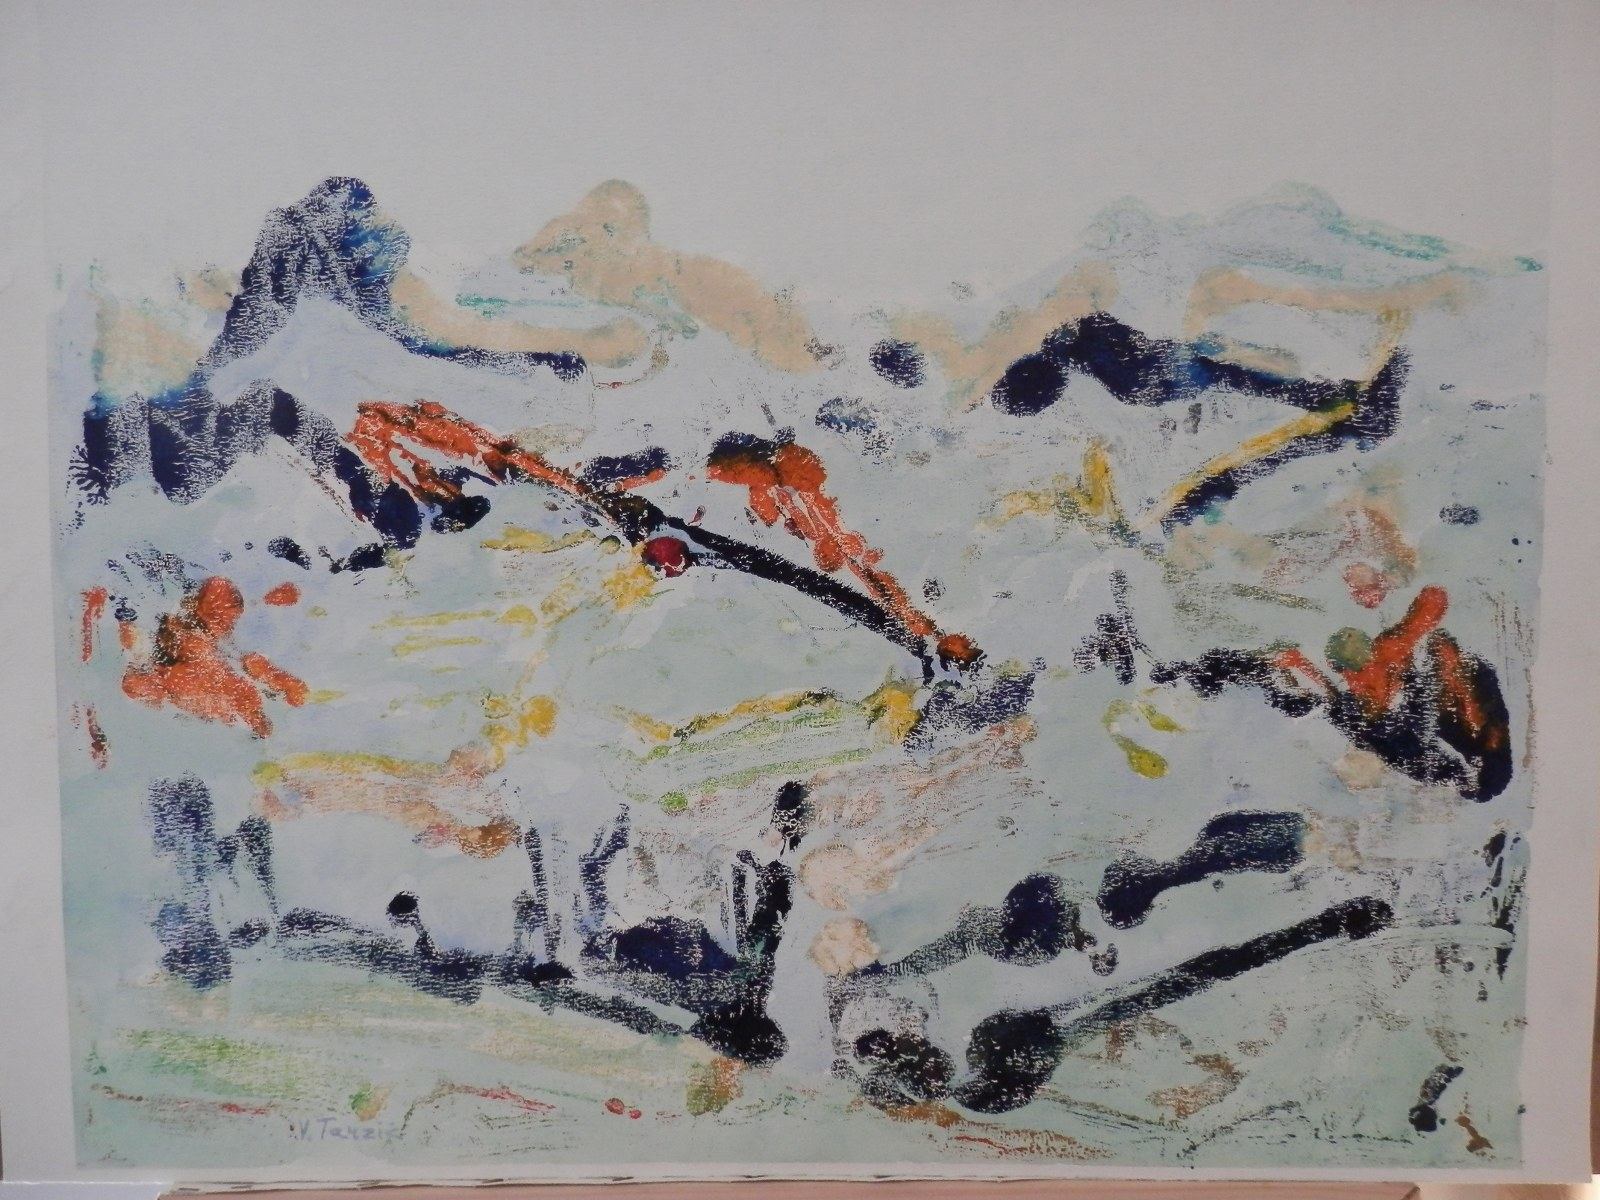 Br. 149 - Ulje i akvarel na papiru - 55x69 <br> 	No. 149 - Oil and aquarel on paper - 55x69